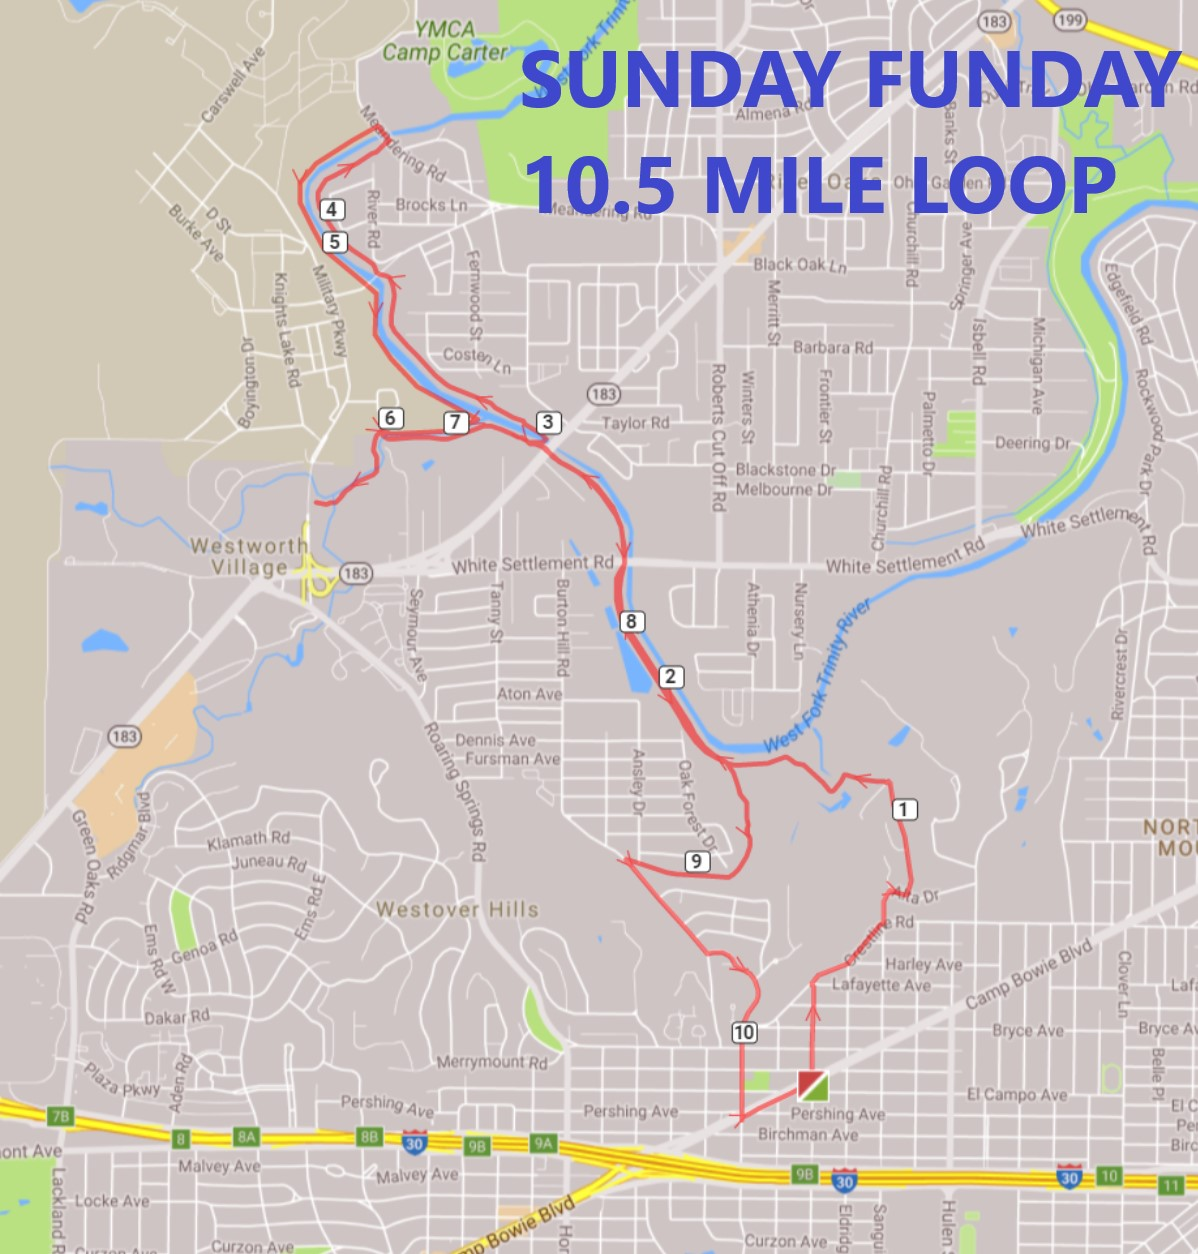 SUNDAY FUNDAY 10.5 MILES ROUTE